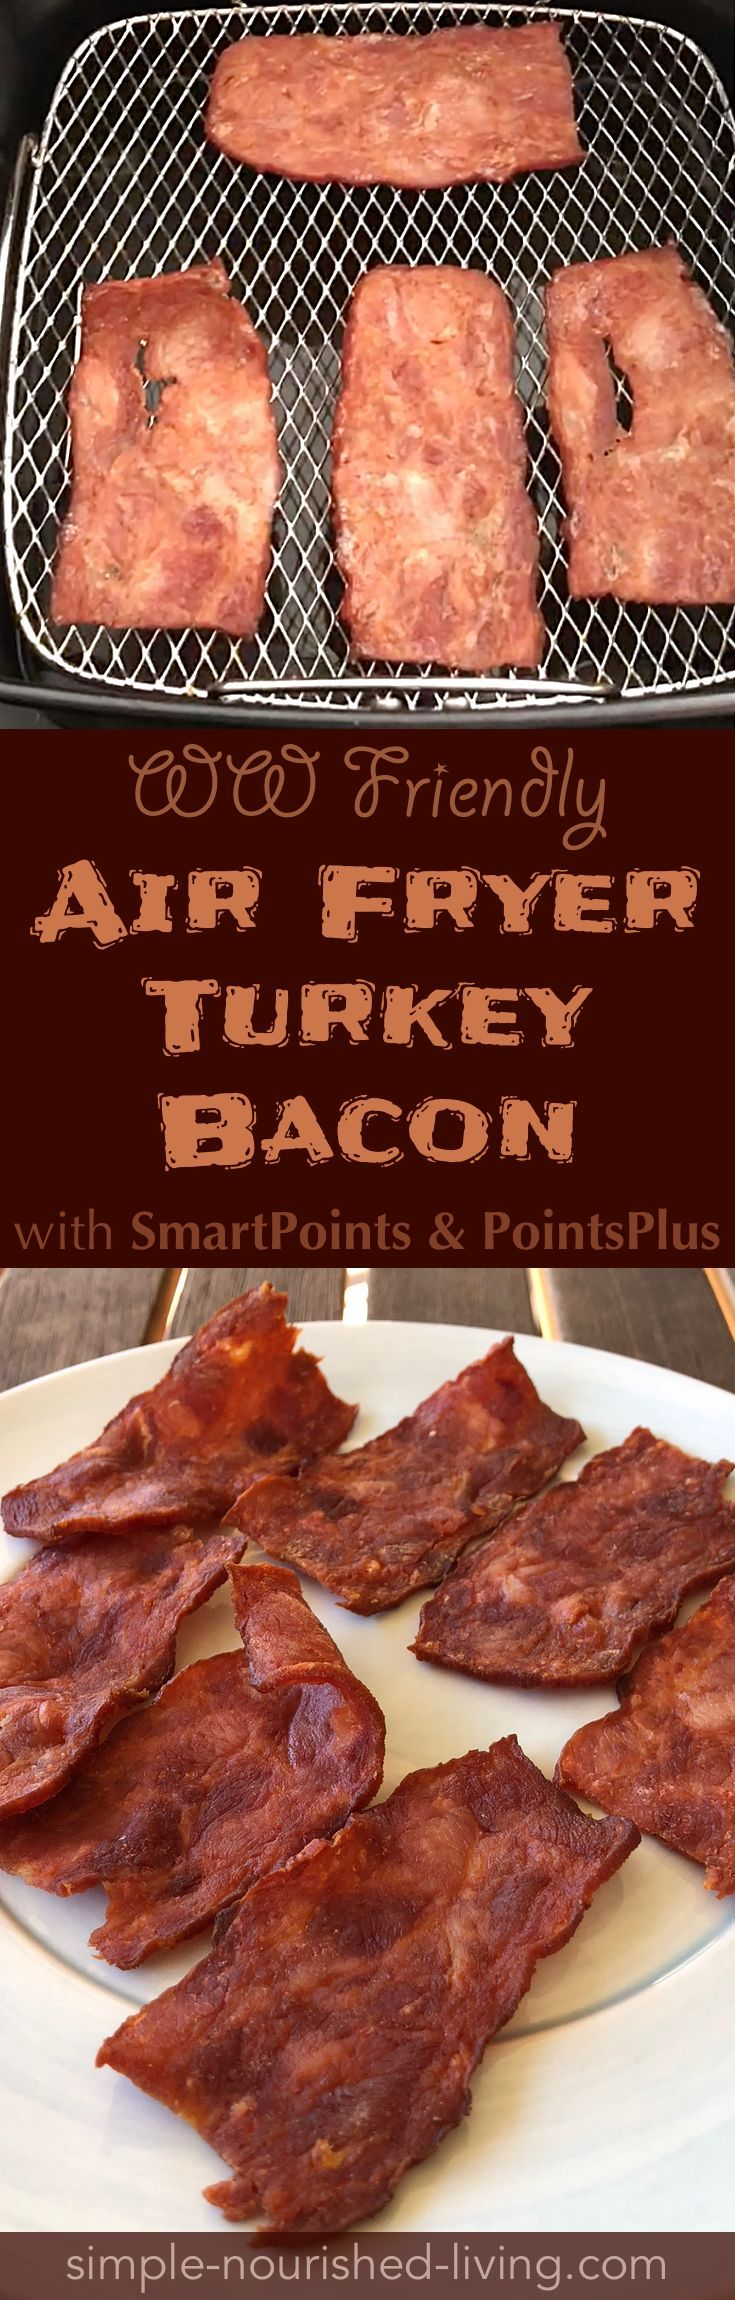 Weight Watchers Recipe of the Day: Crispy Air Fryer Turkey Bacon made with no added oil - *1 WW SmartPoint per slice | simple-nourished-living.com